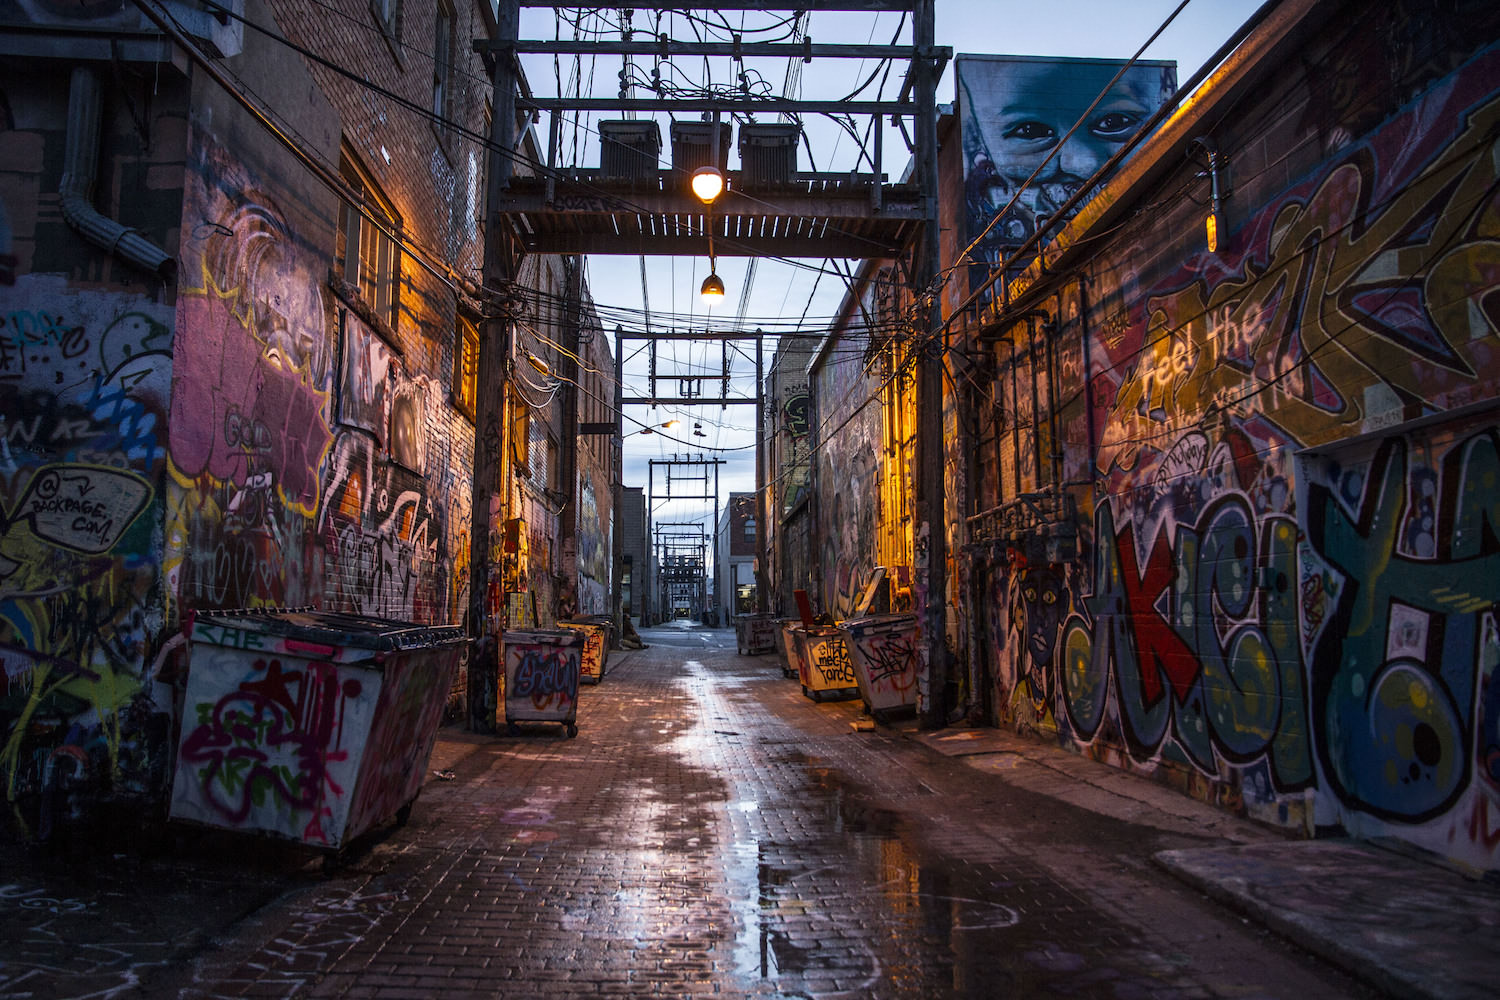 The breathtaking alley behind the  Alex Johnson Hotel  covered in inspiring street art.  It goes by the name Art Alley.